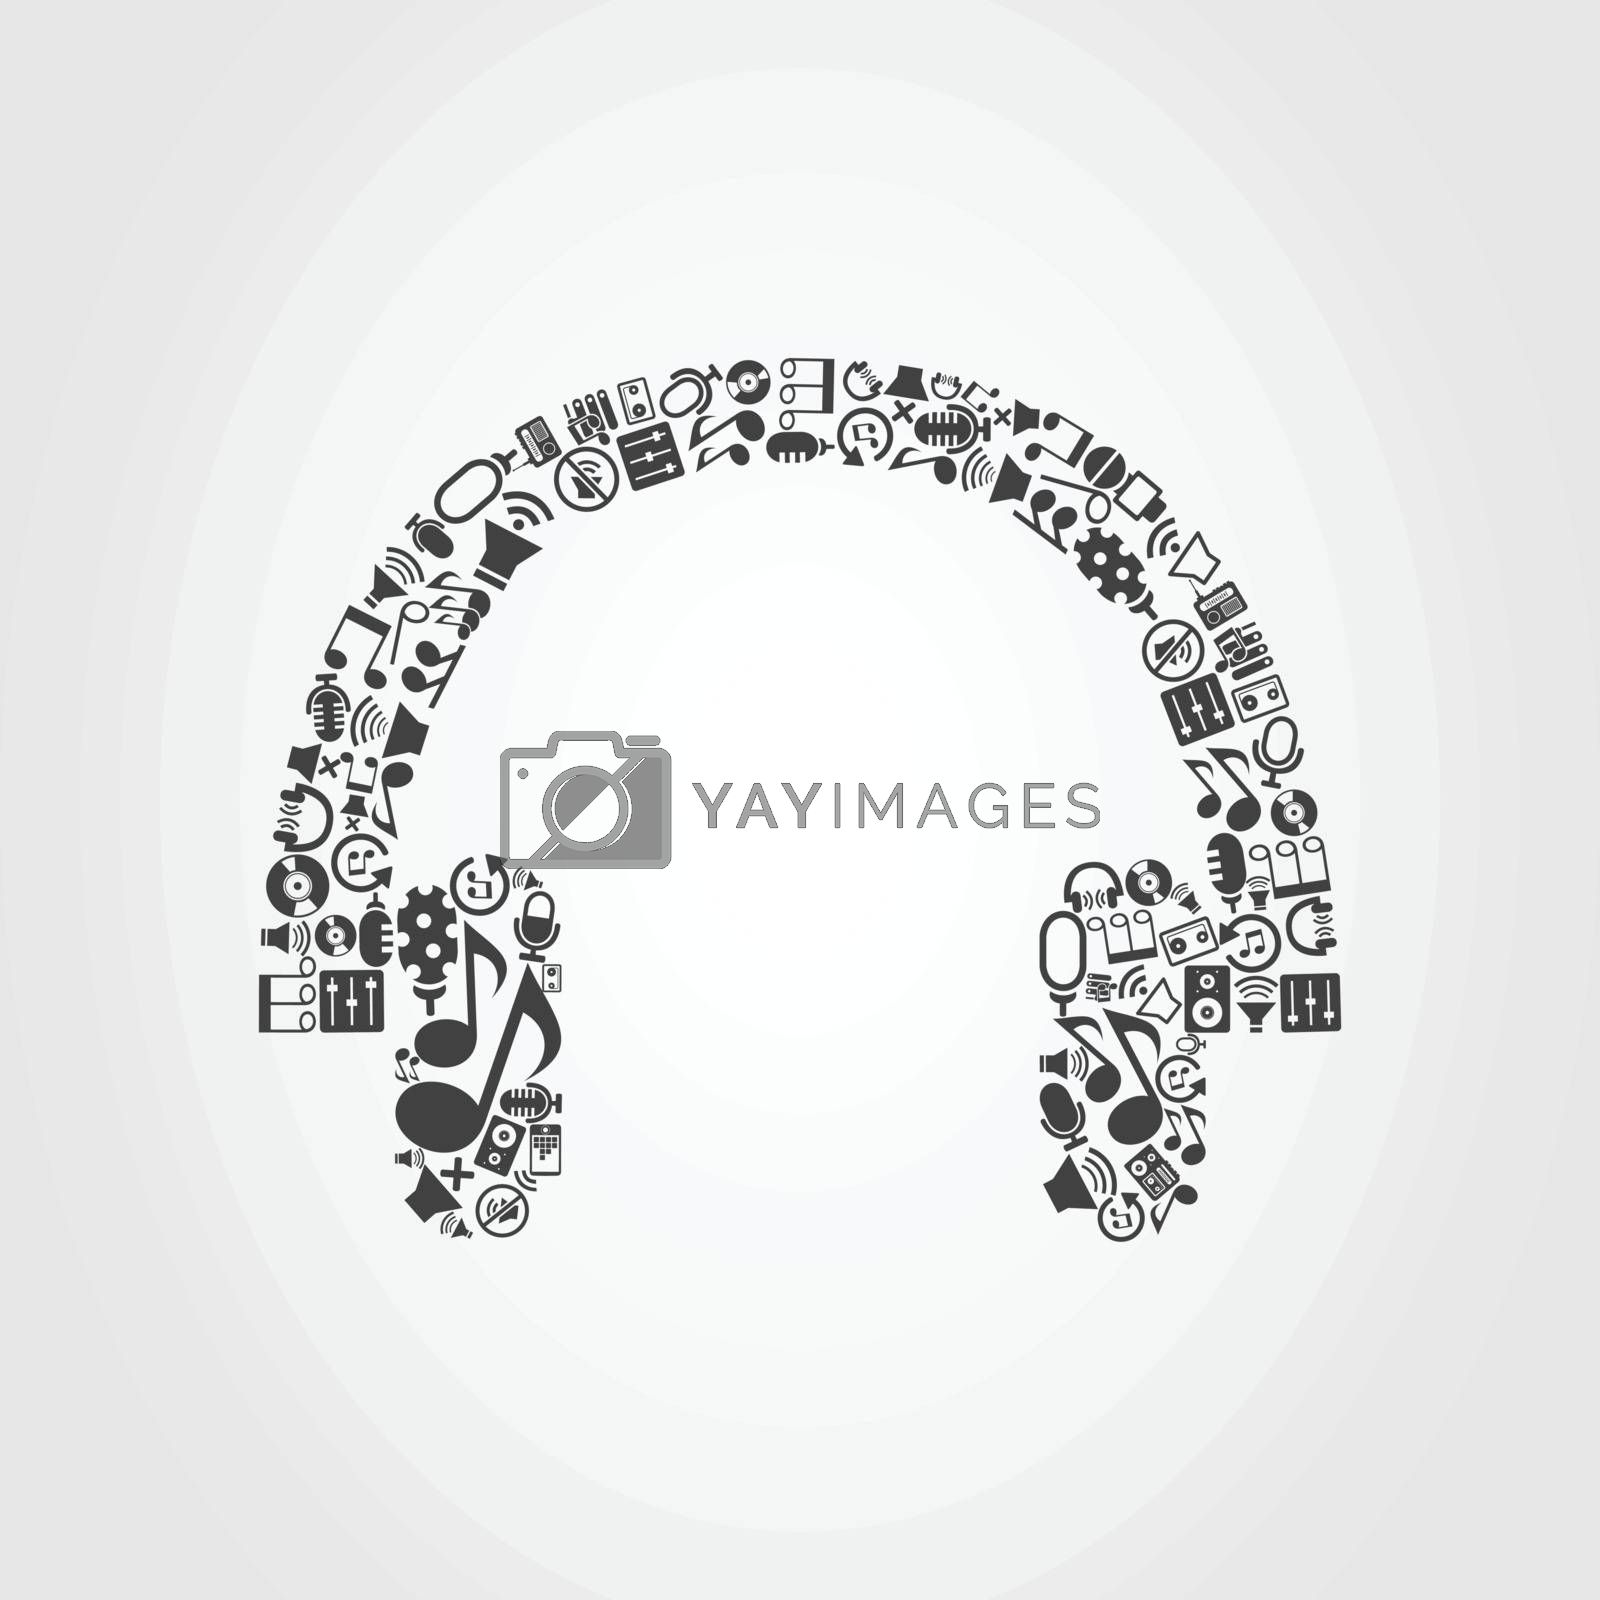 Earphone made of music subjects. A vector illustration